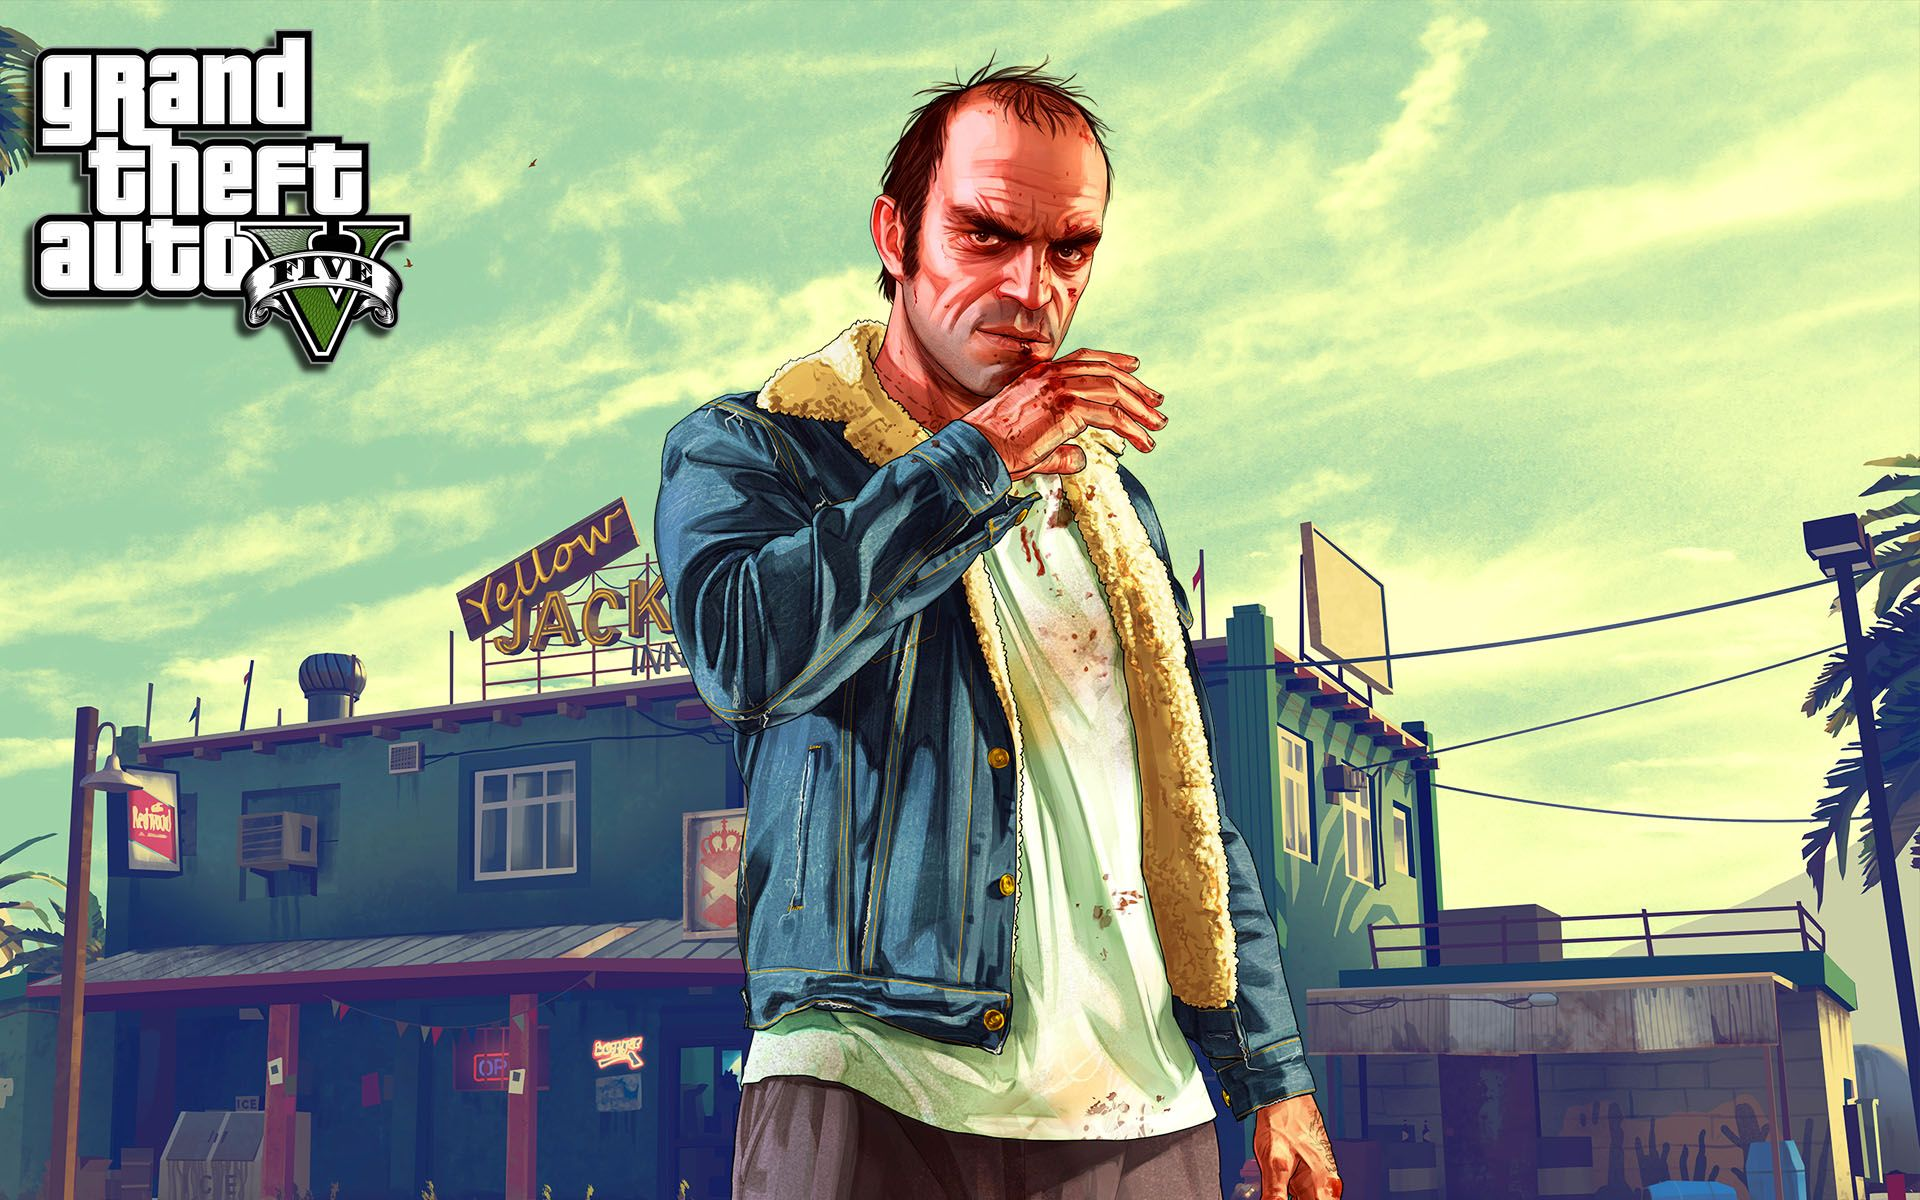 grand theft auto 5 background wallpaper | games | pinterest | grand